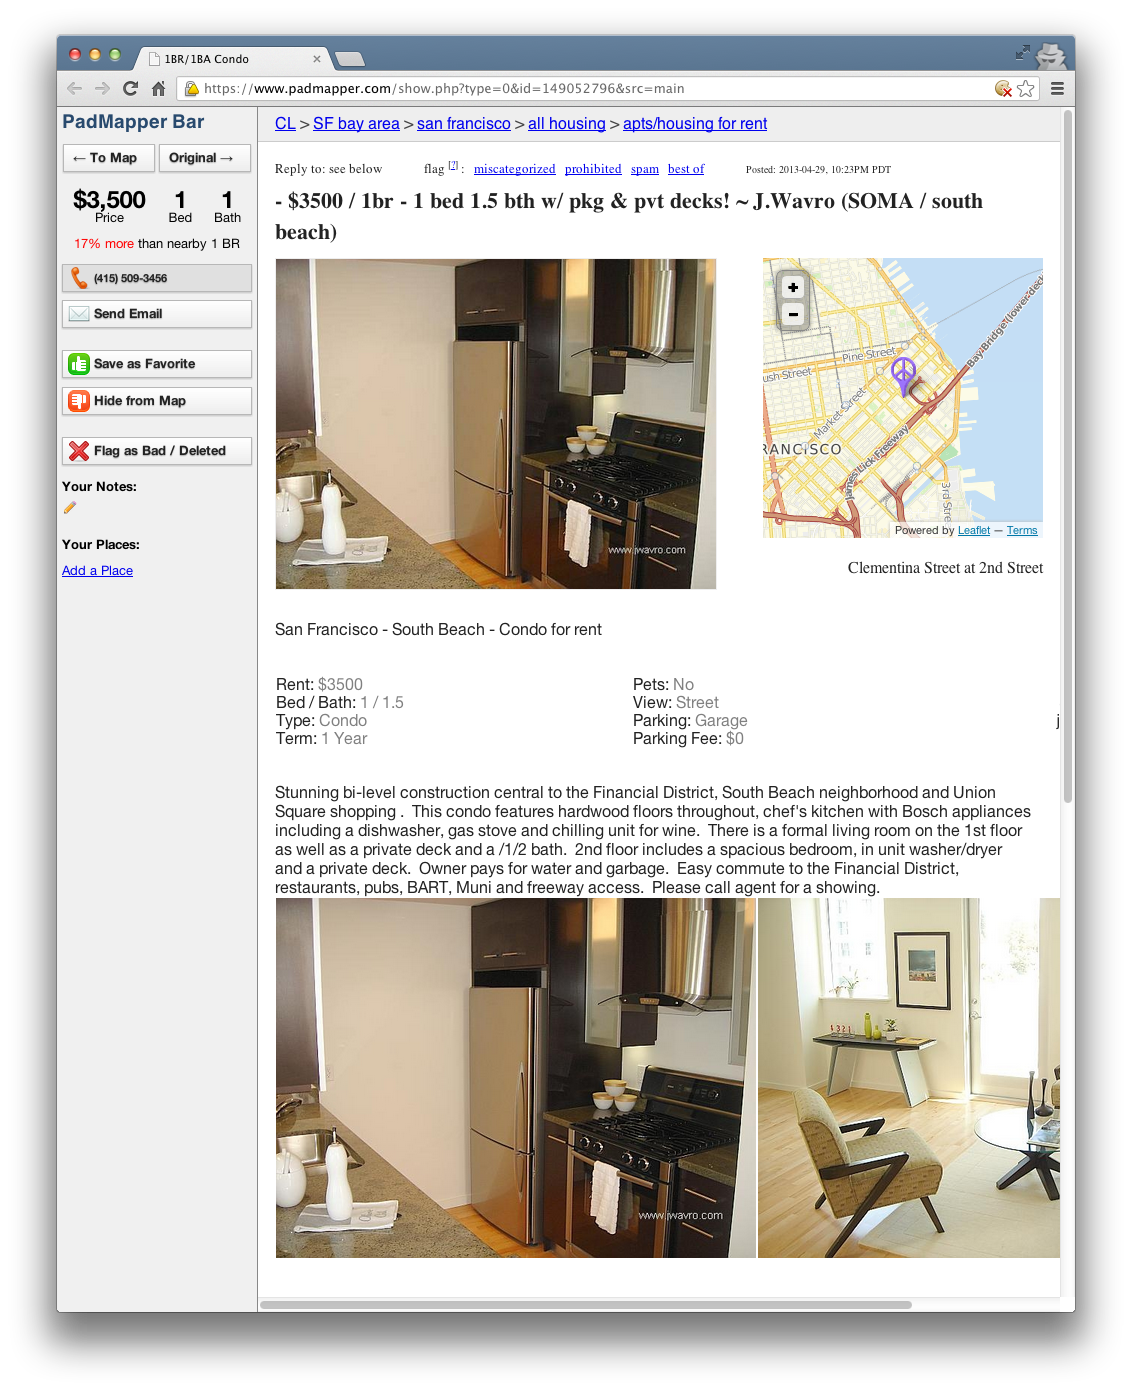 This listing of a 1 bedroom apartment around the corner from CNET's San Francisco headquarters was posted yesterday on Craigslist and now appears on PadMapper.